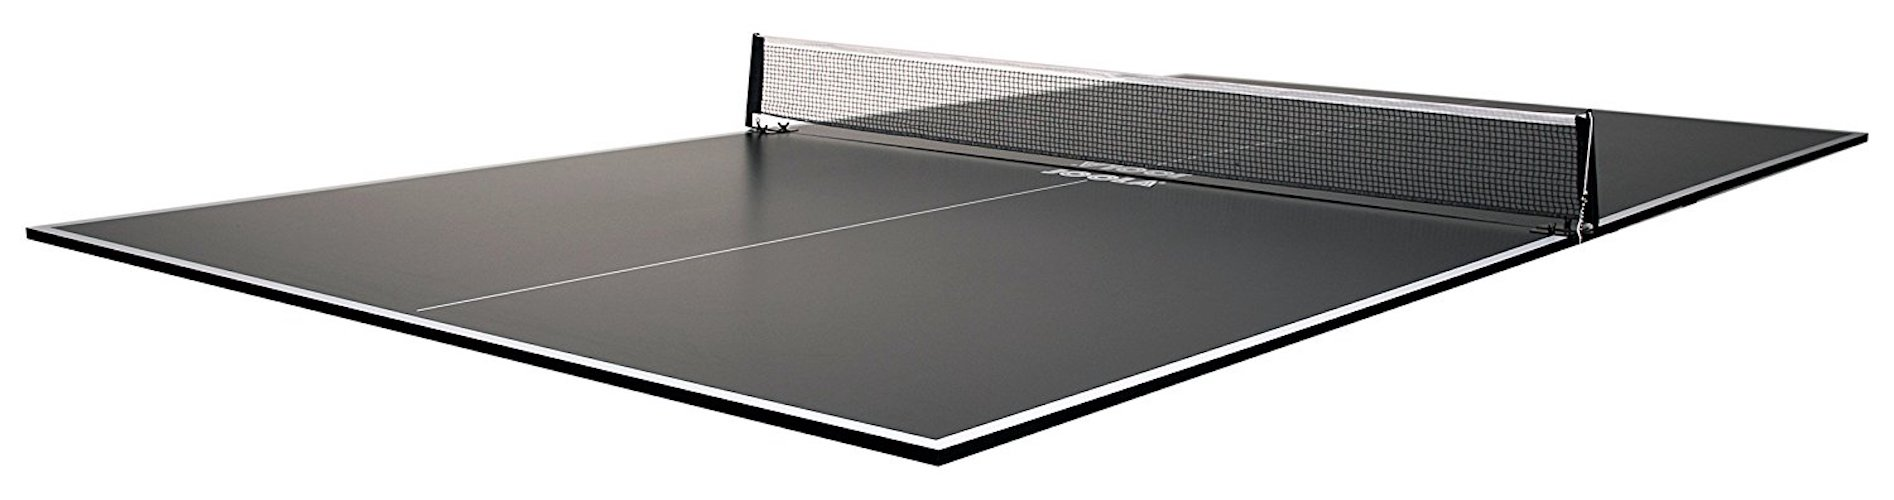 6. JOOLA Conversion Table Tennis Top with Foam Backing and Net Set